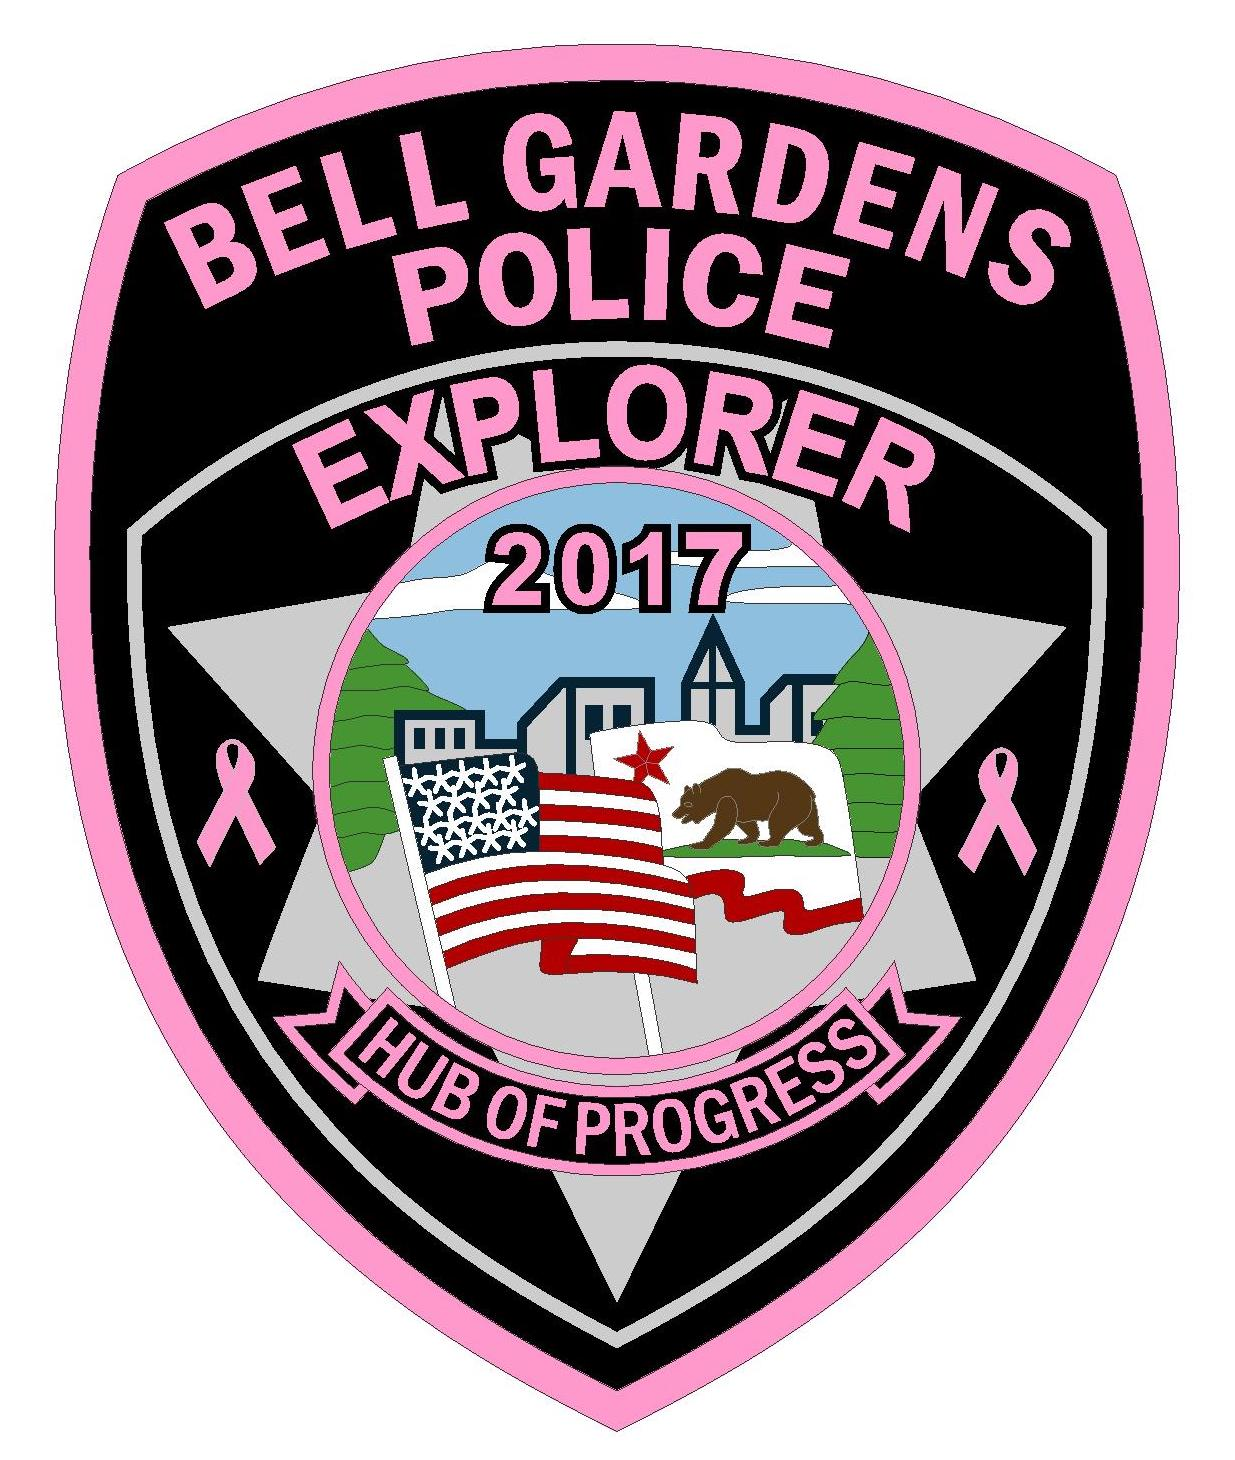 BELL GARDENS (CA) - PINK PATCH 2017 EXPLORER-page-